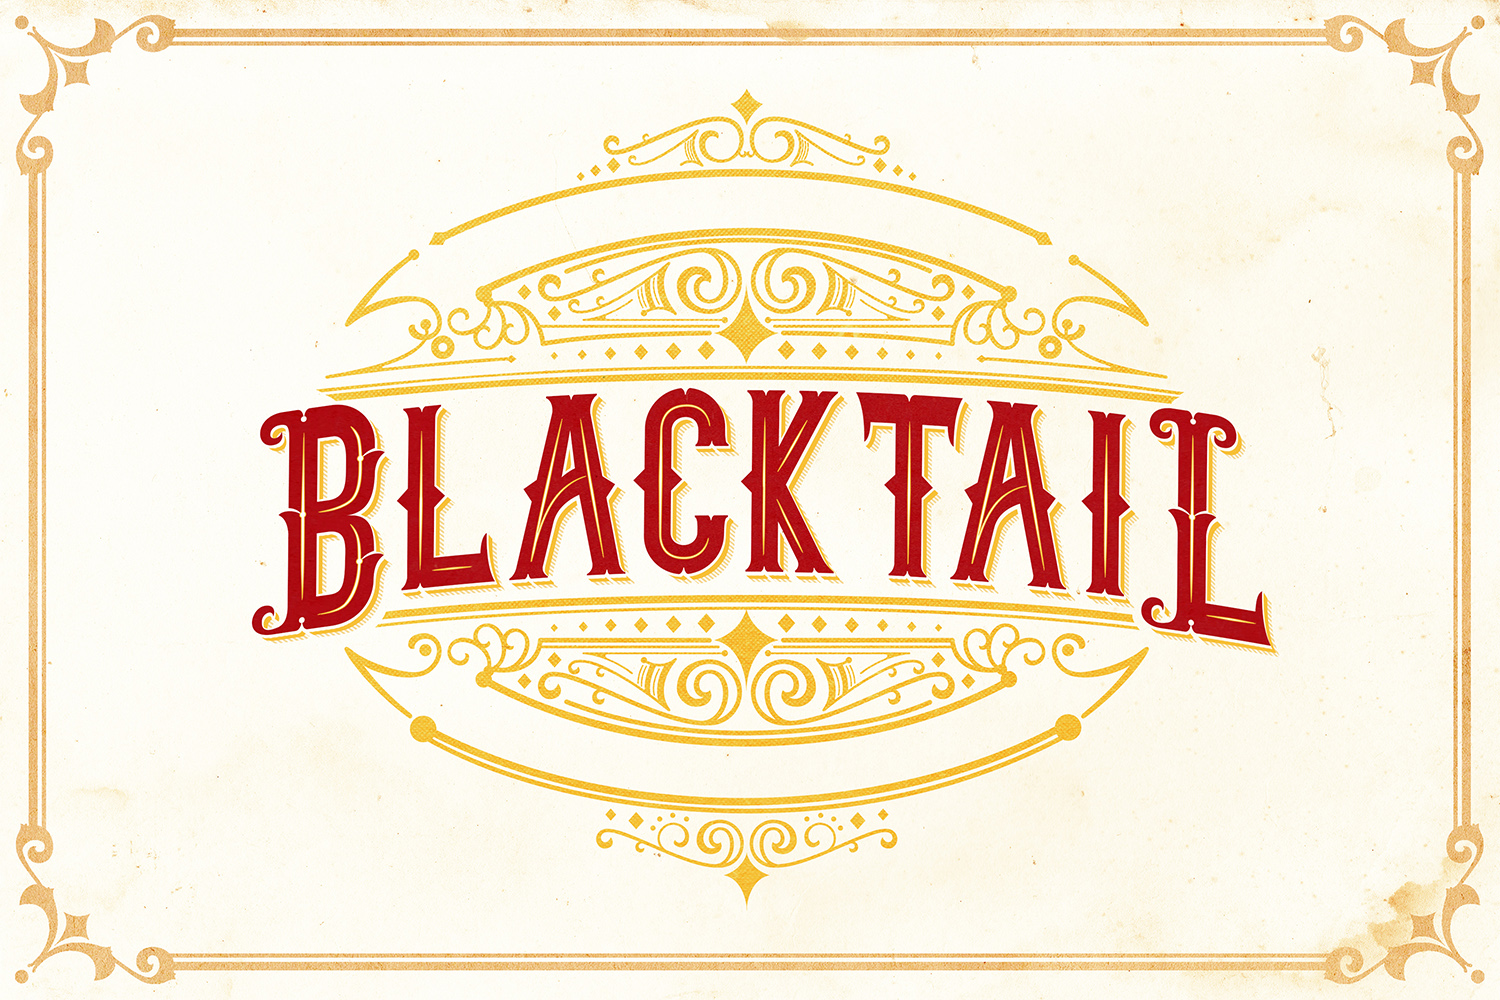 Blacktail Font -INTROSALE 25 example image 7